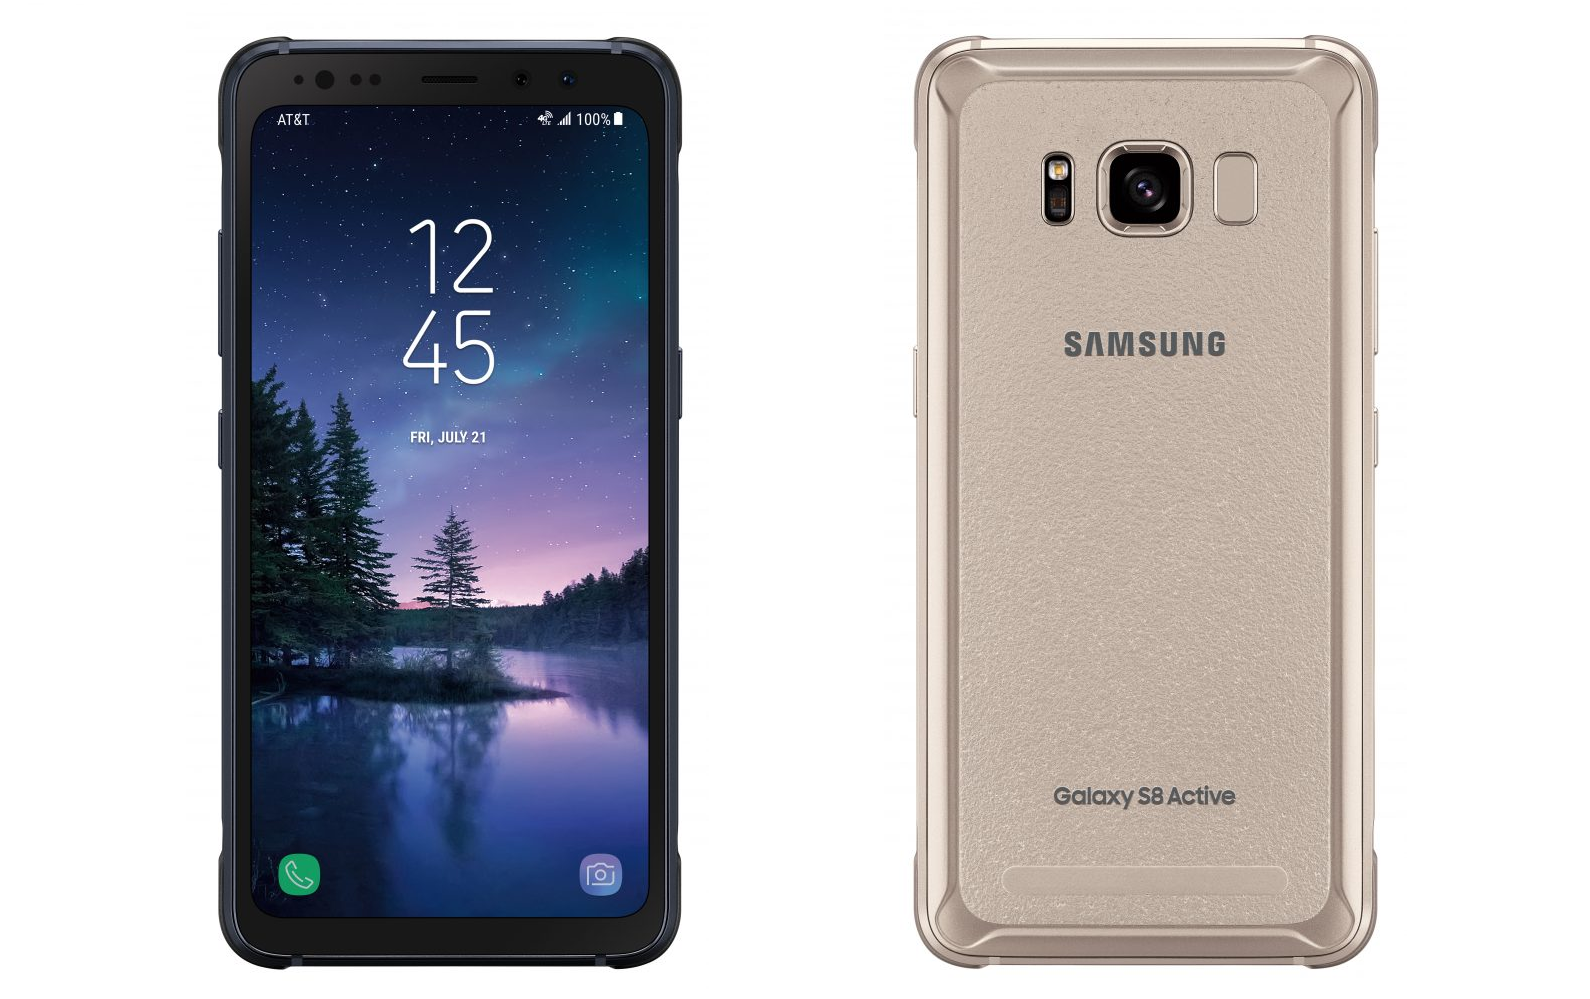 Samsung Galaxy S8 Active pre-orders now live at AT&T